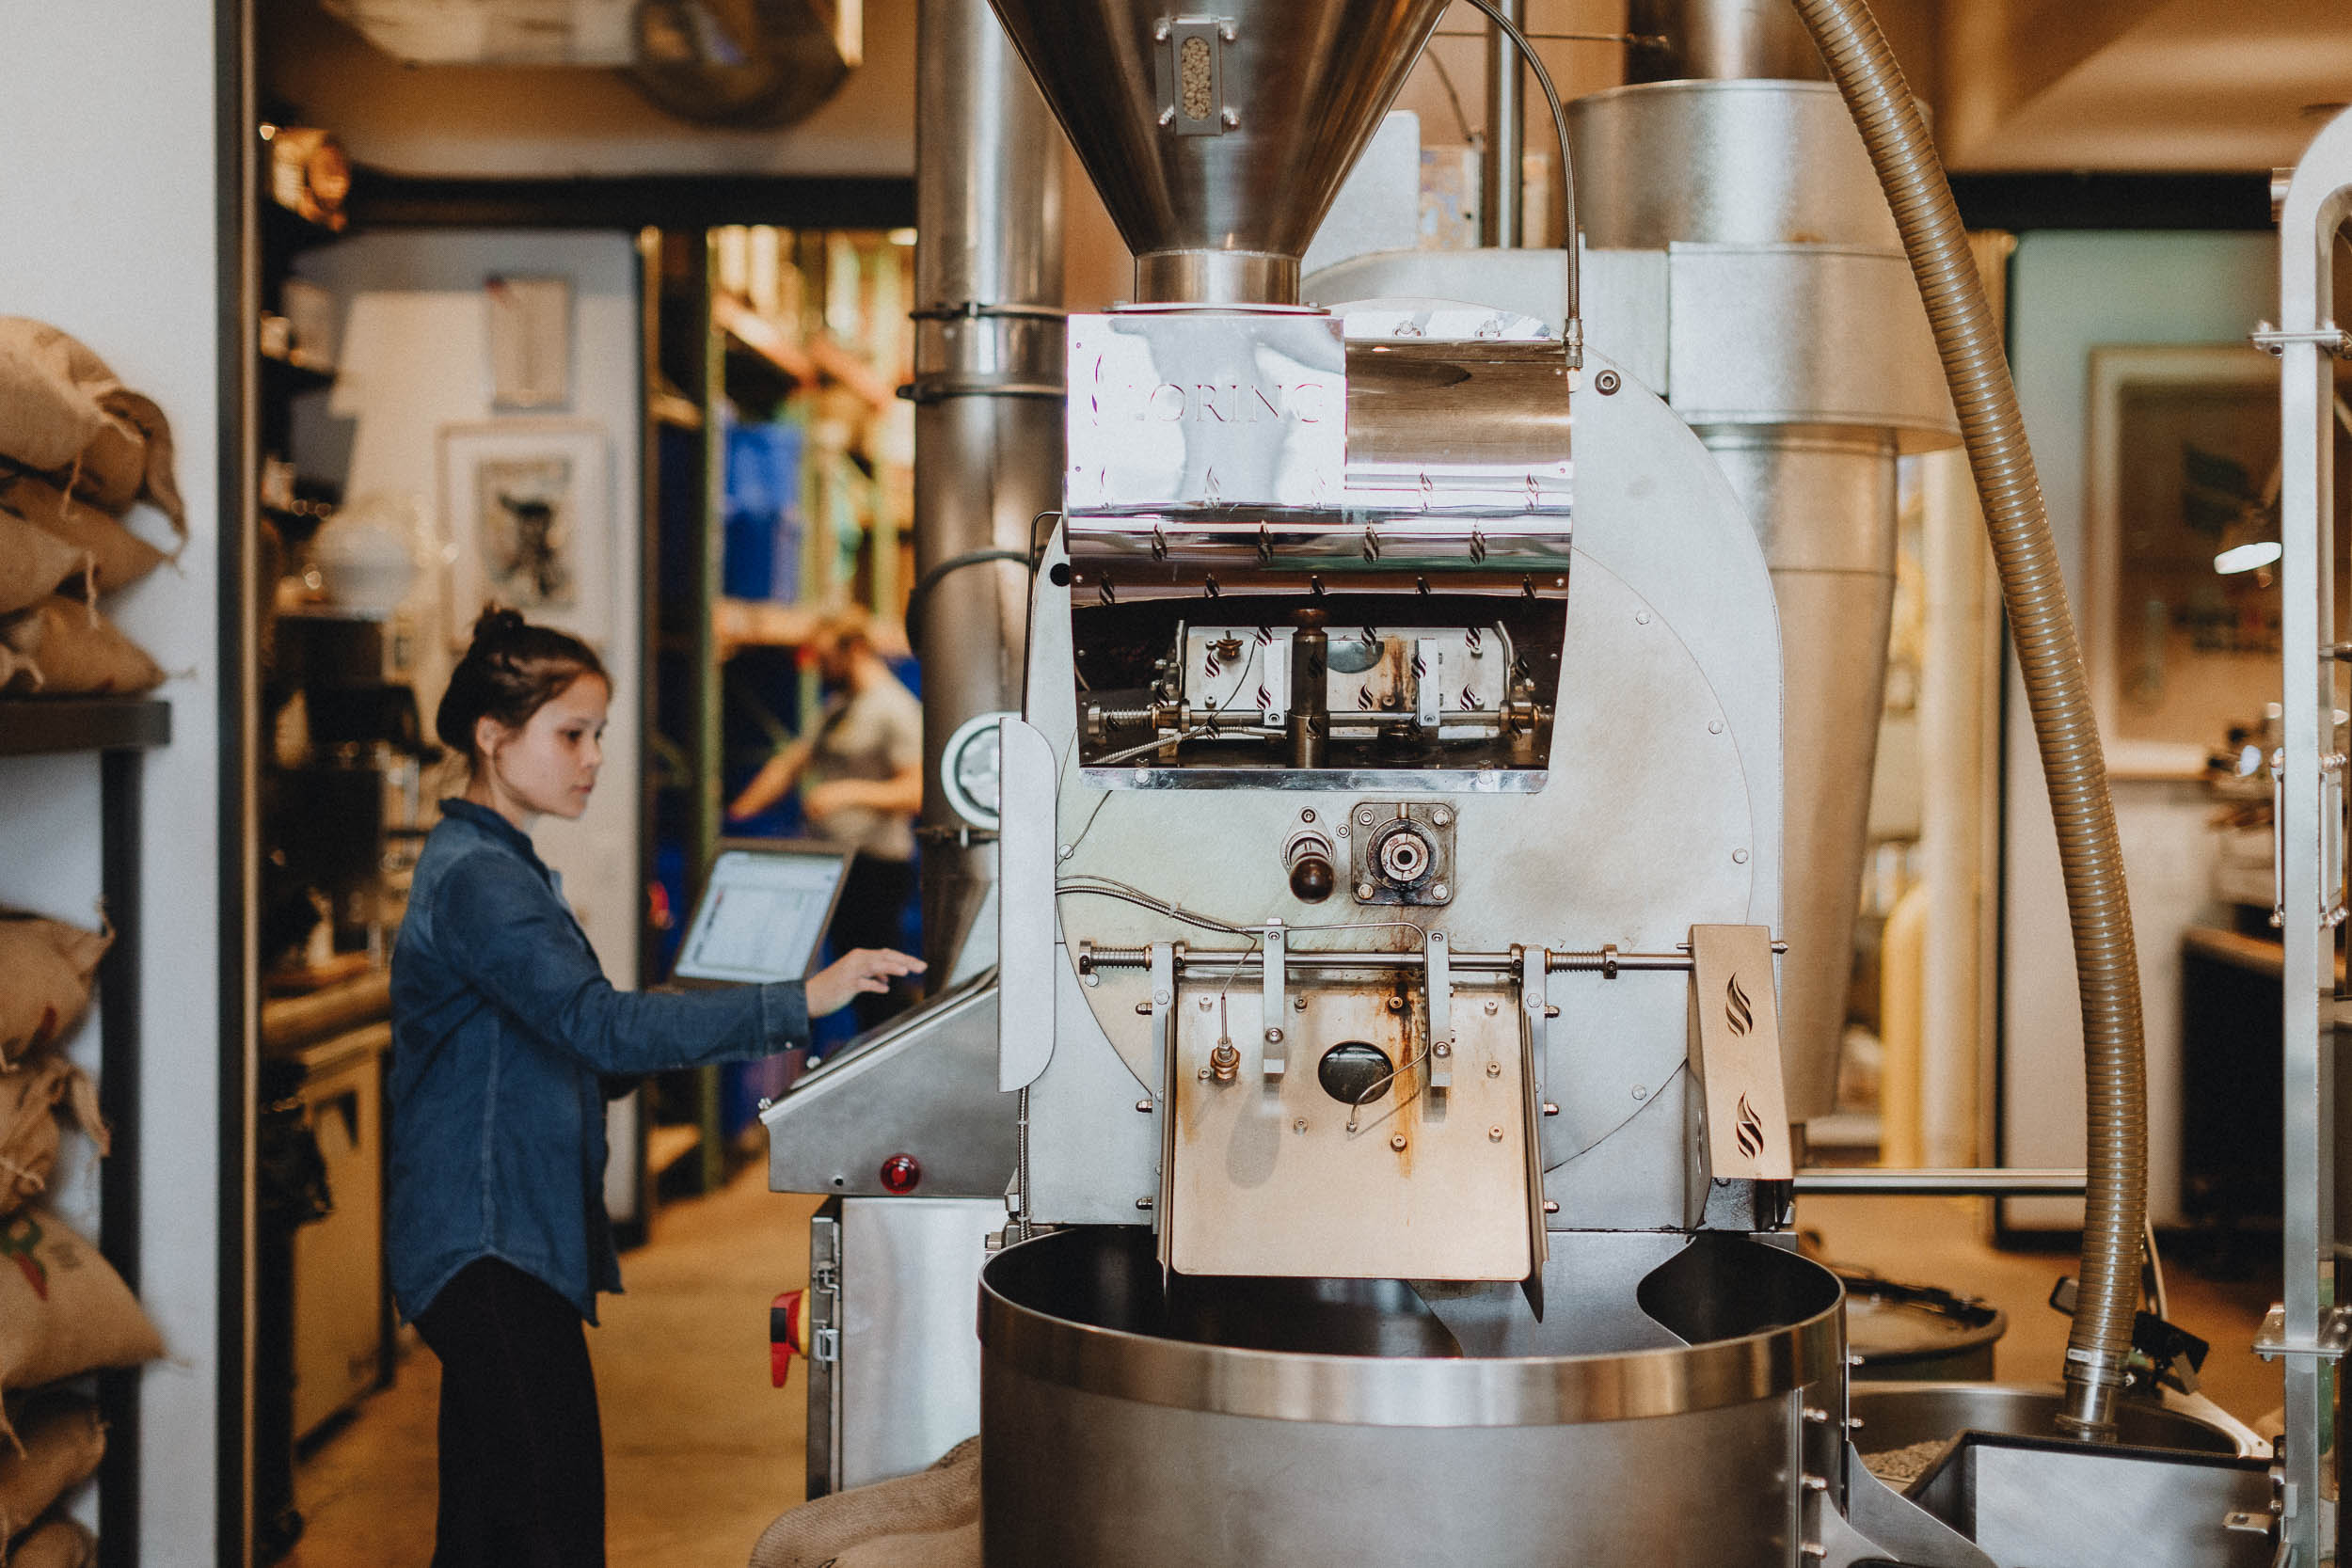 Loring Roaster at Compass Coffee DC